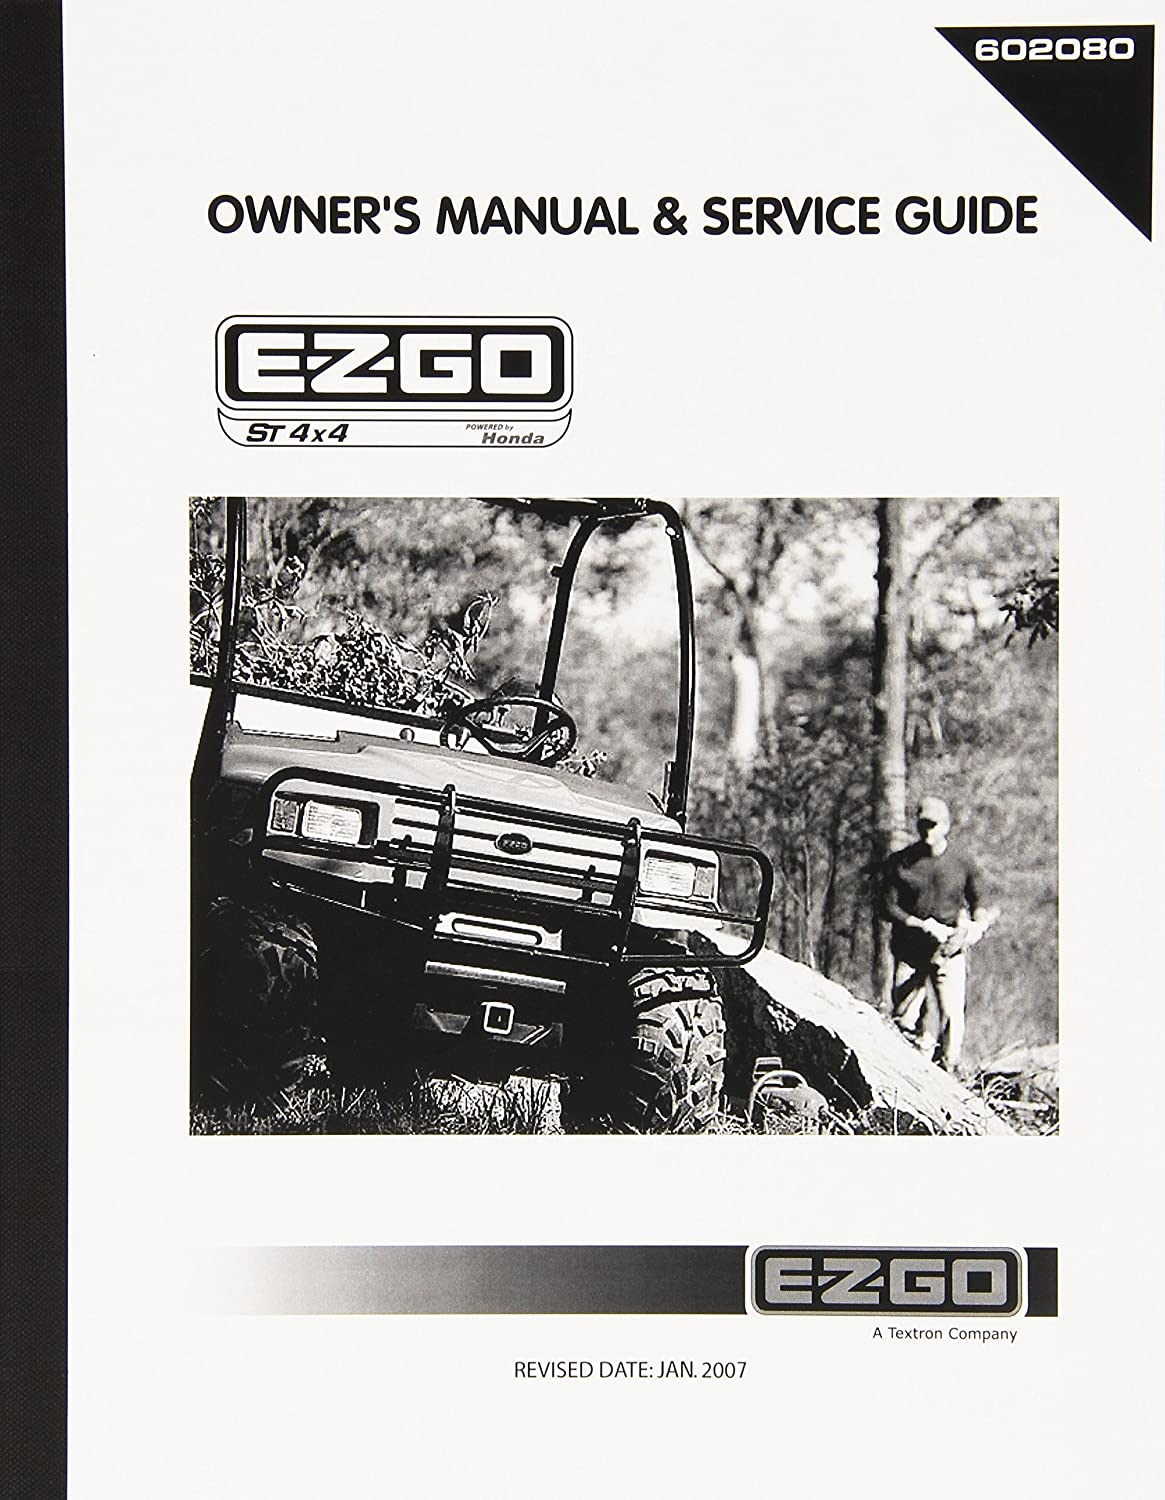 Amazon.com : EZGO 602080 2005 Owners Manual and Service Guide for Gasoline  Powered Utility Vehicle : Outdoor Decorative Fences : Garden & Outdoor